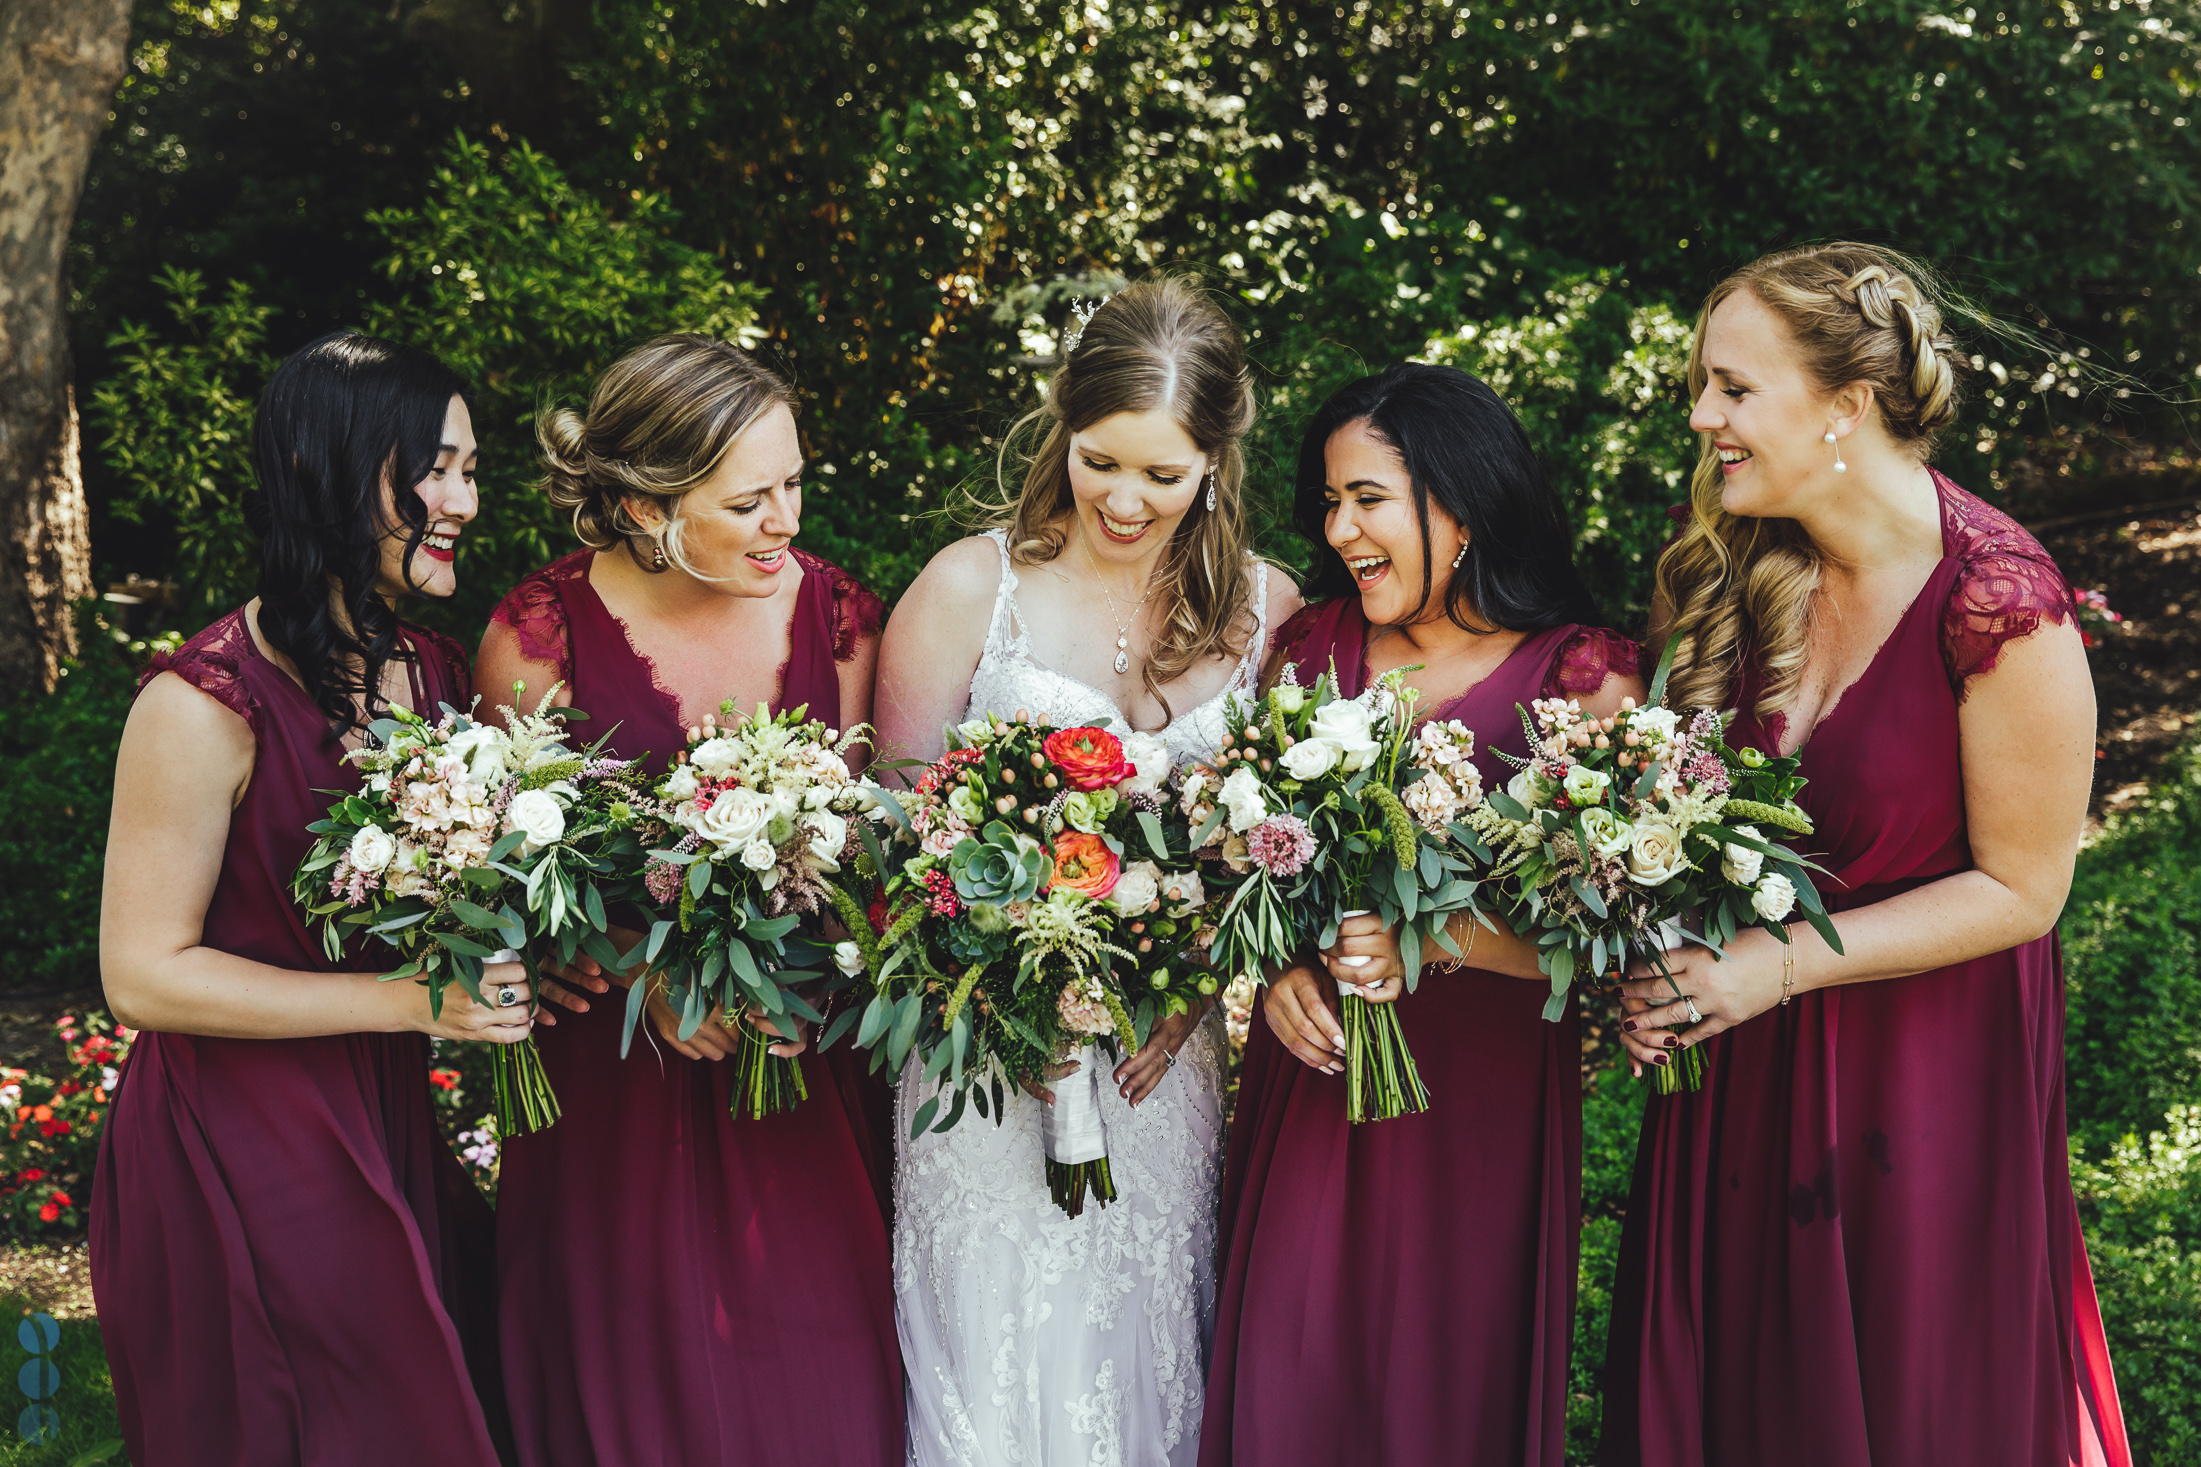 Bride and her Bridesmaid's enjoying their time after the wedding ceremony.